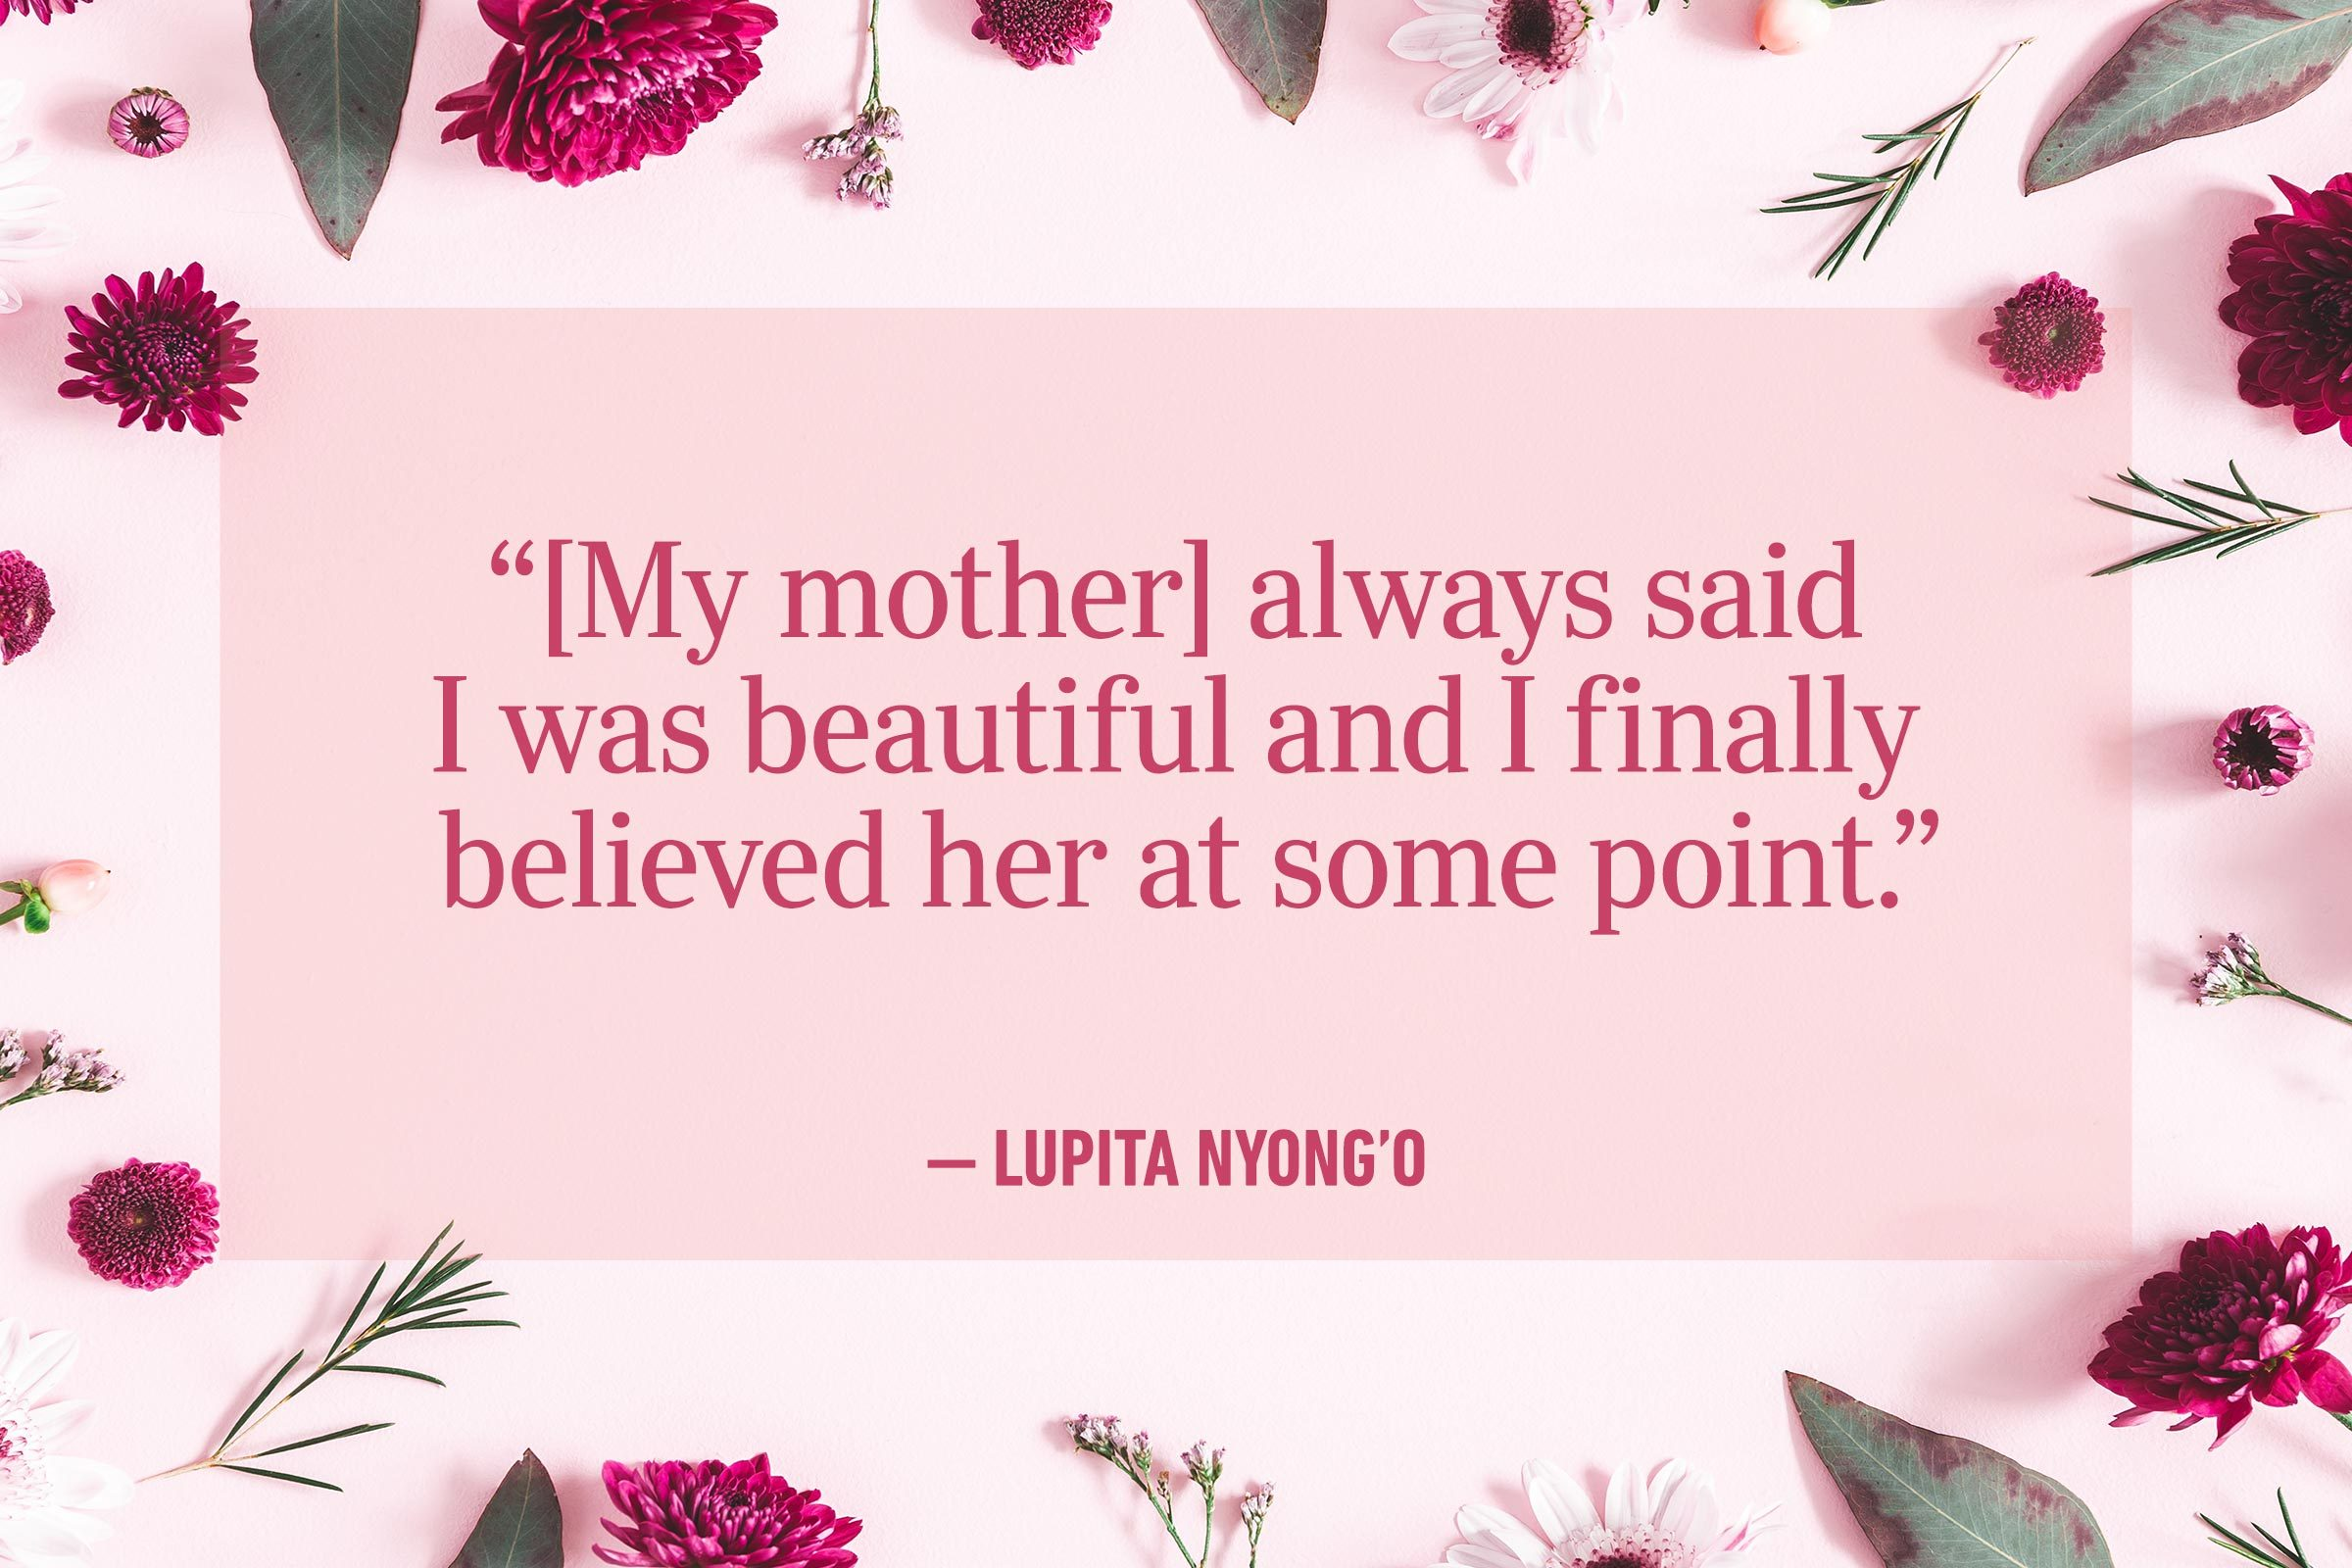 """""""[My mother] always said I was beautiful and I finally believed her at some point."""" —Lupita Nyong'o"""